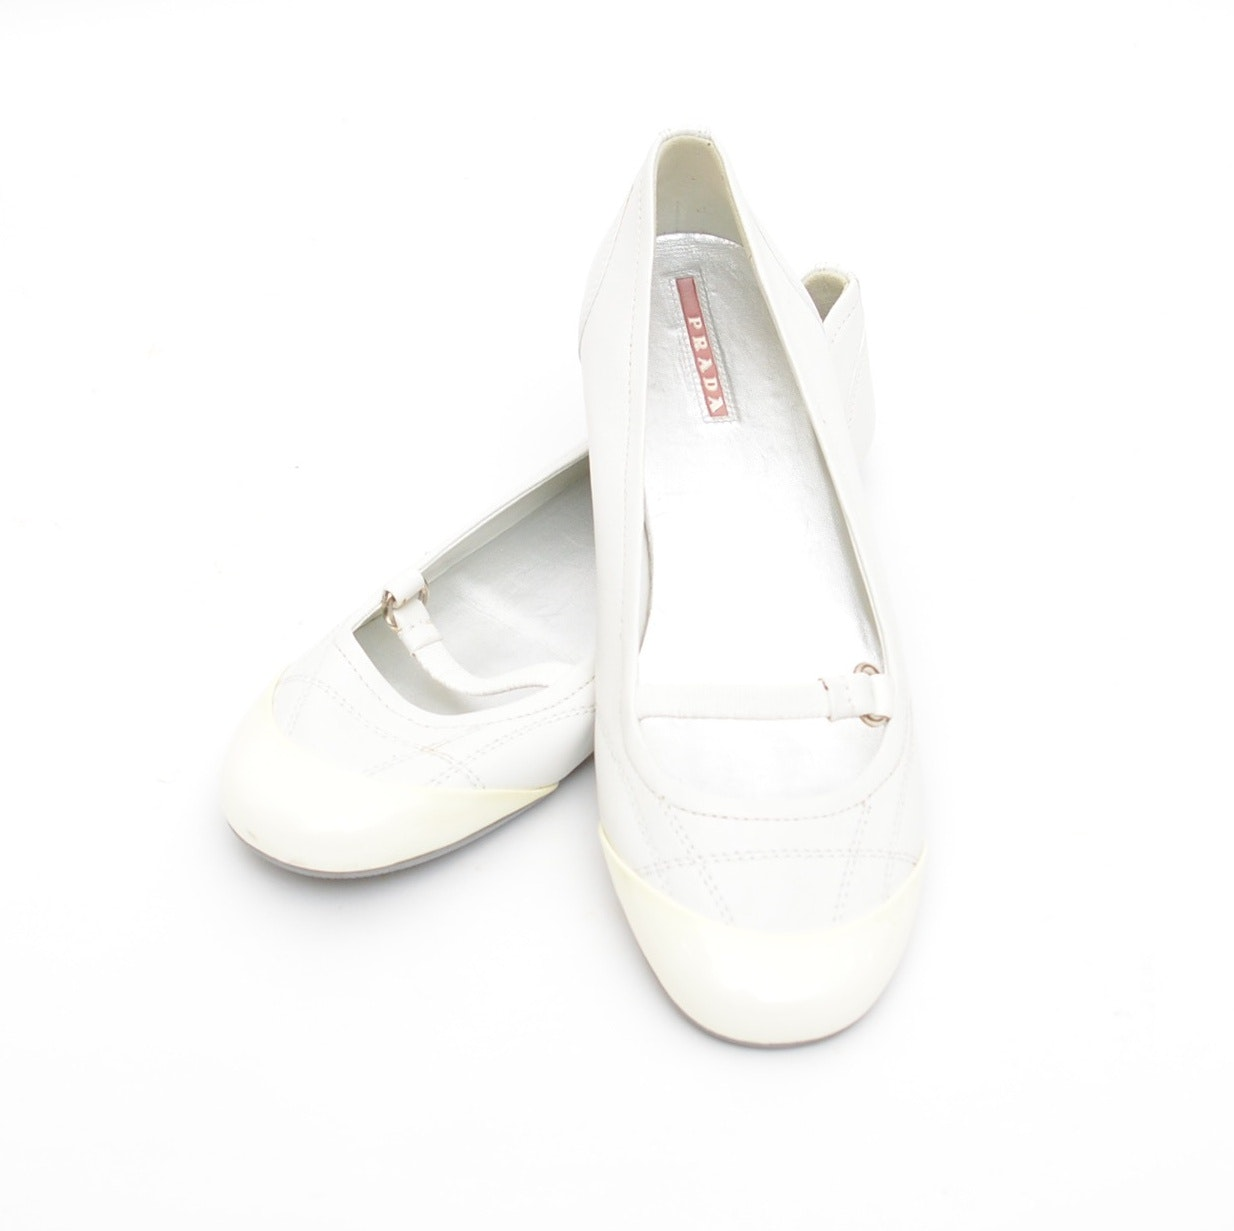 Prada White Leather Ballet Flats